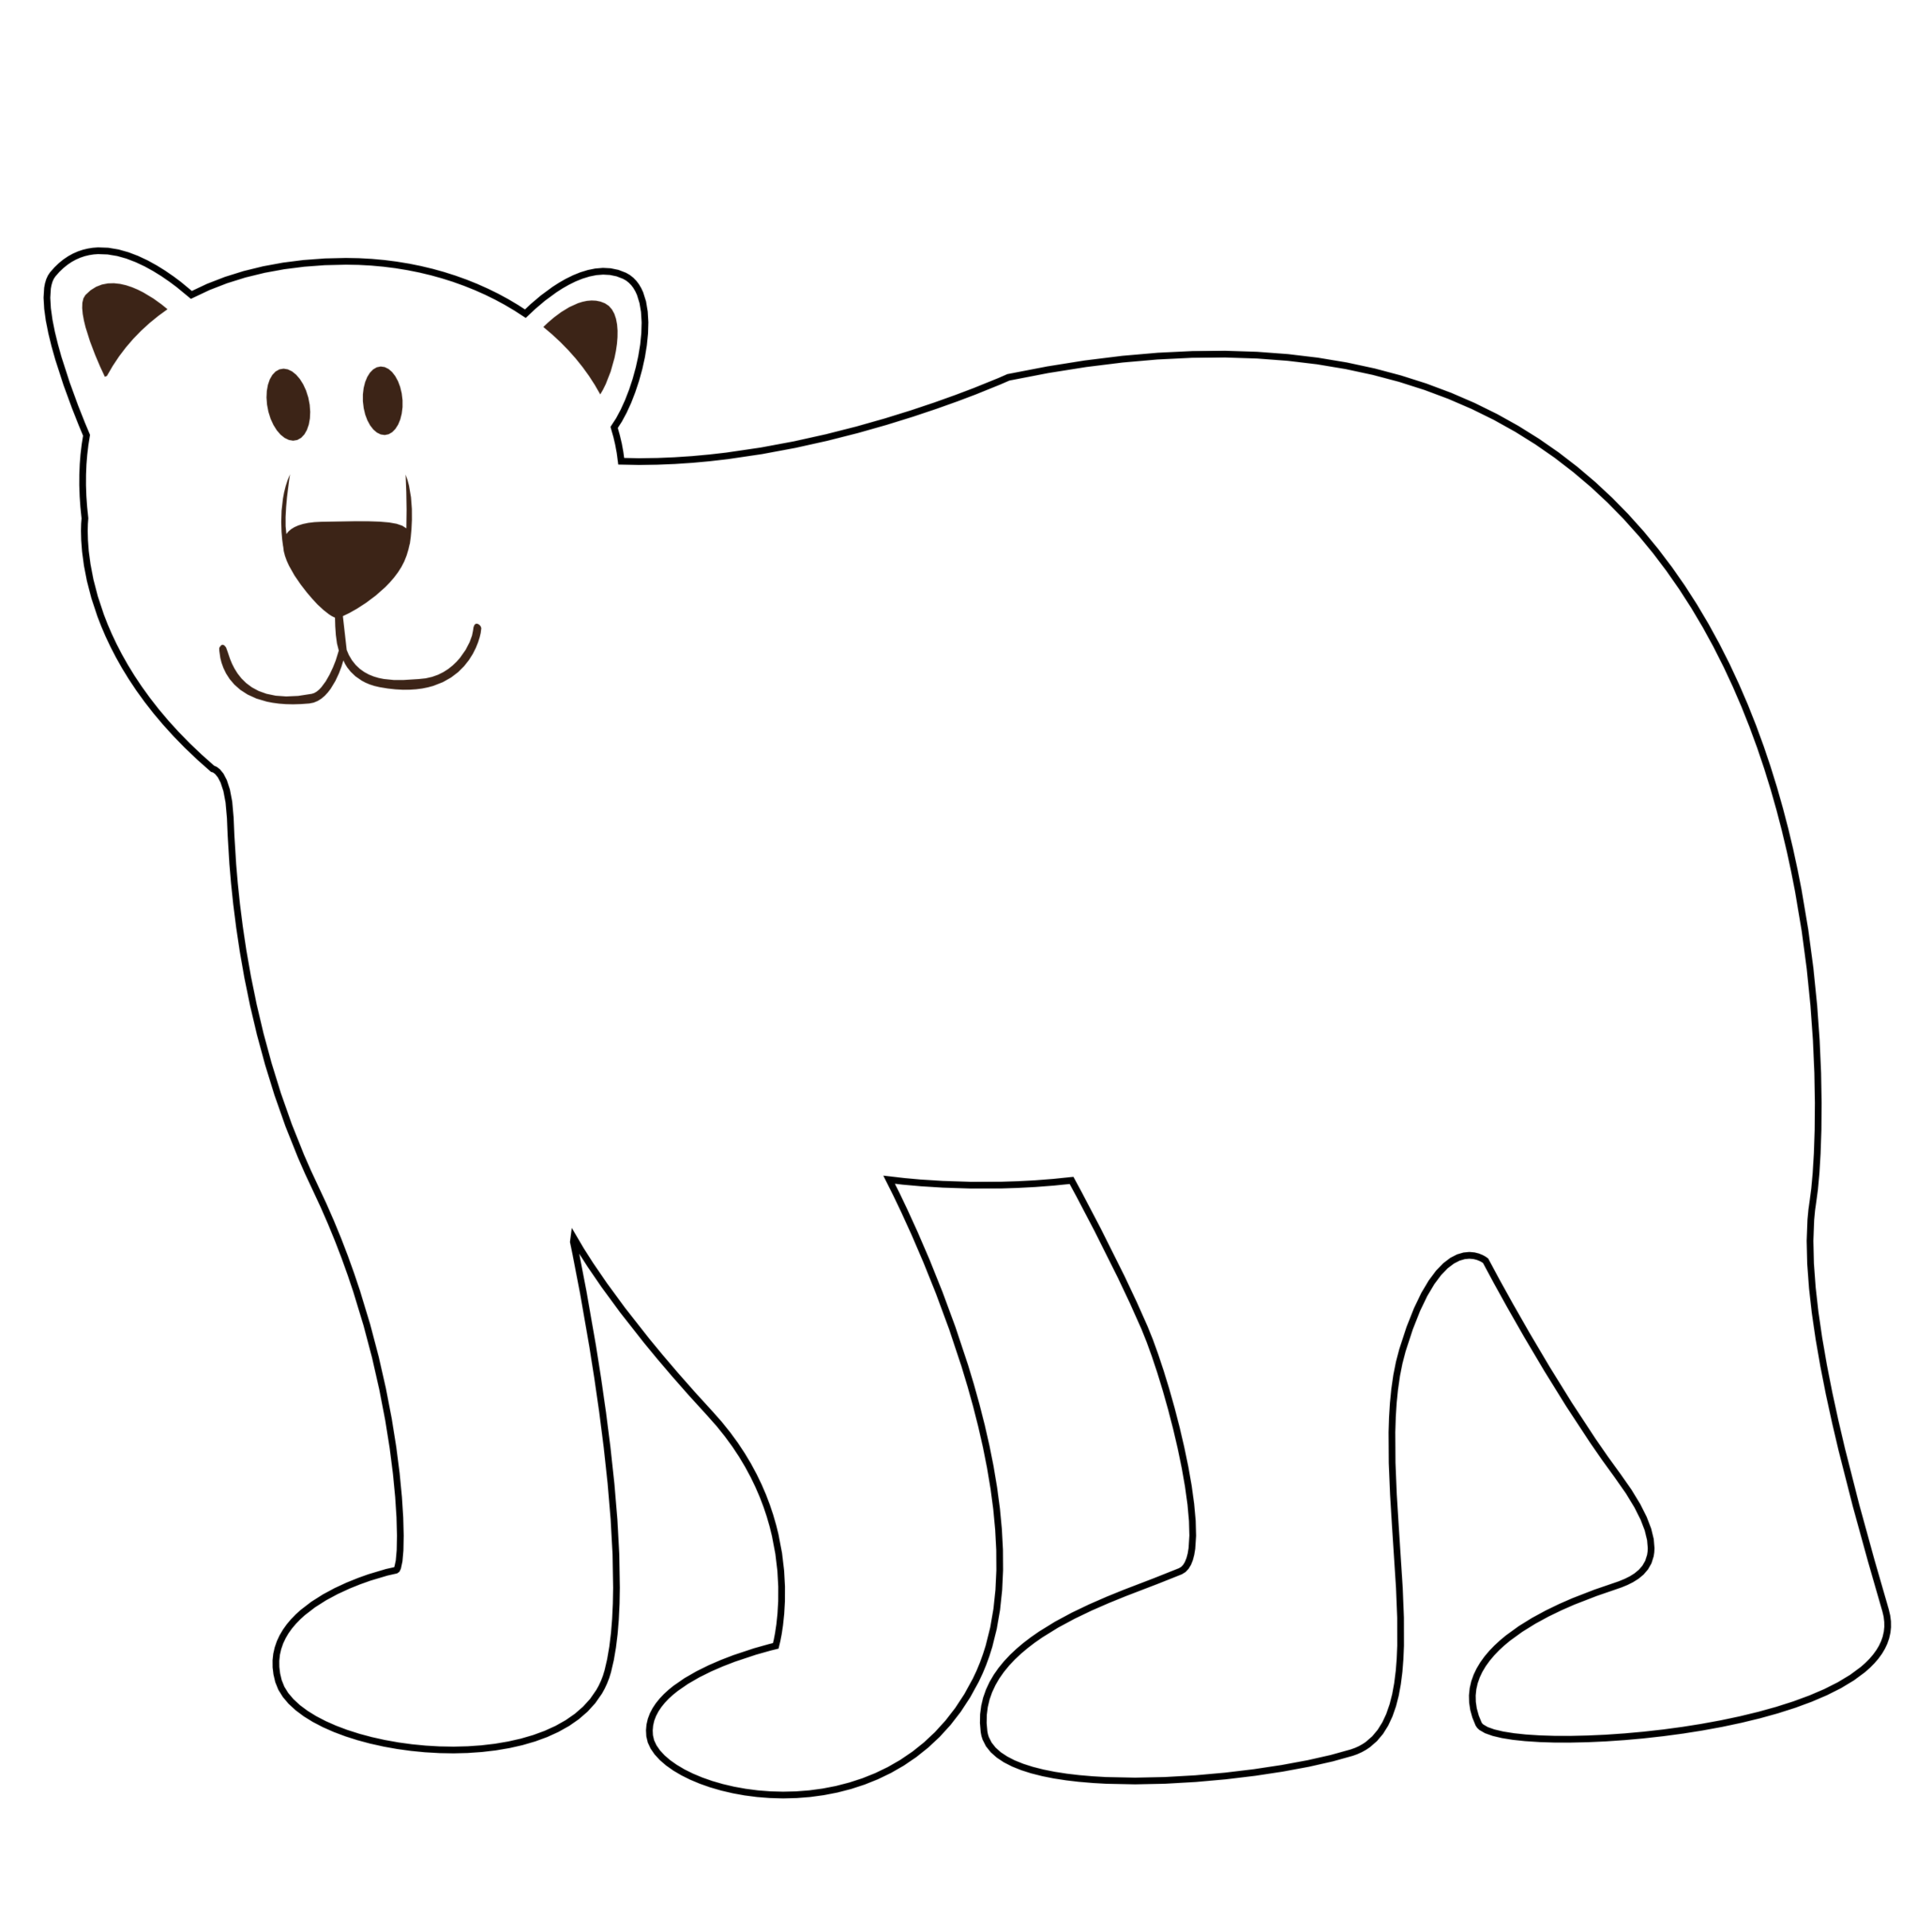 Bear Clipart Black And White & Bear Black And White Clip Art.